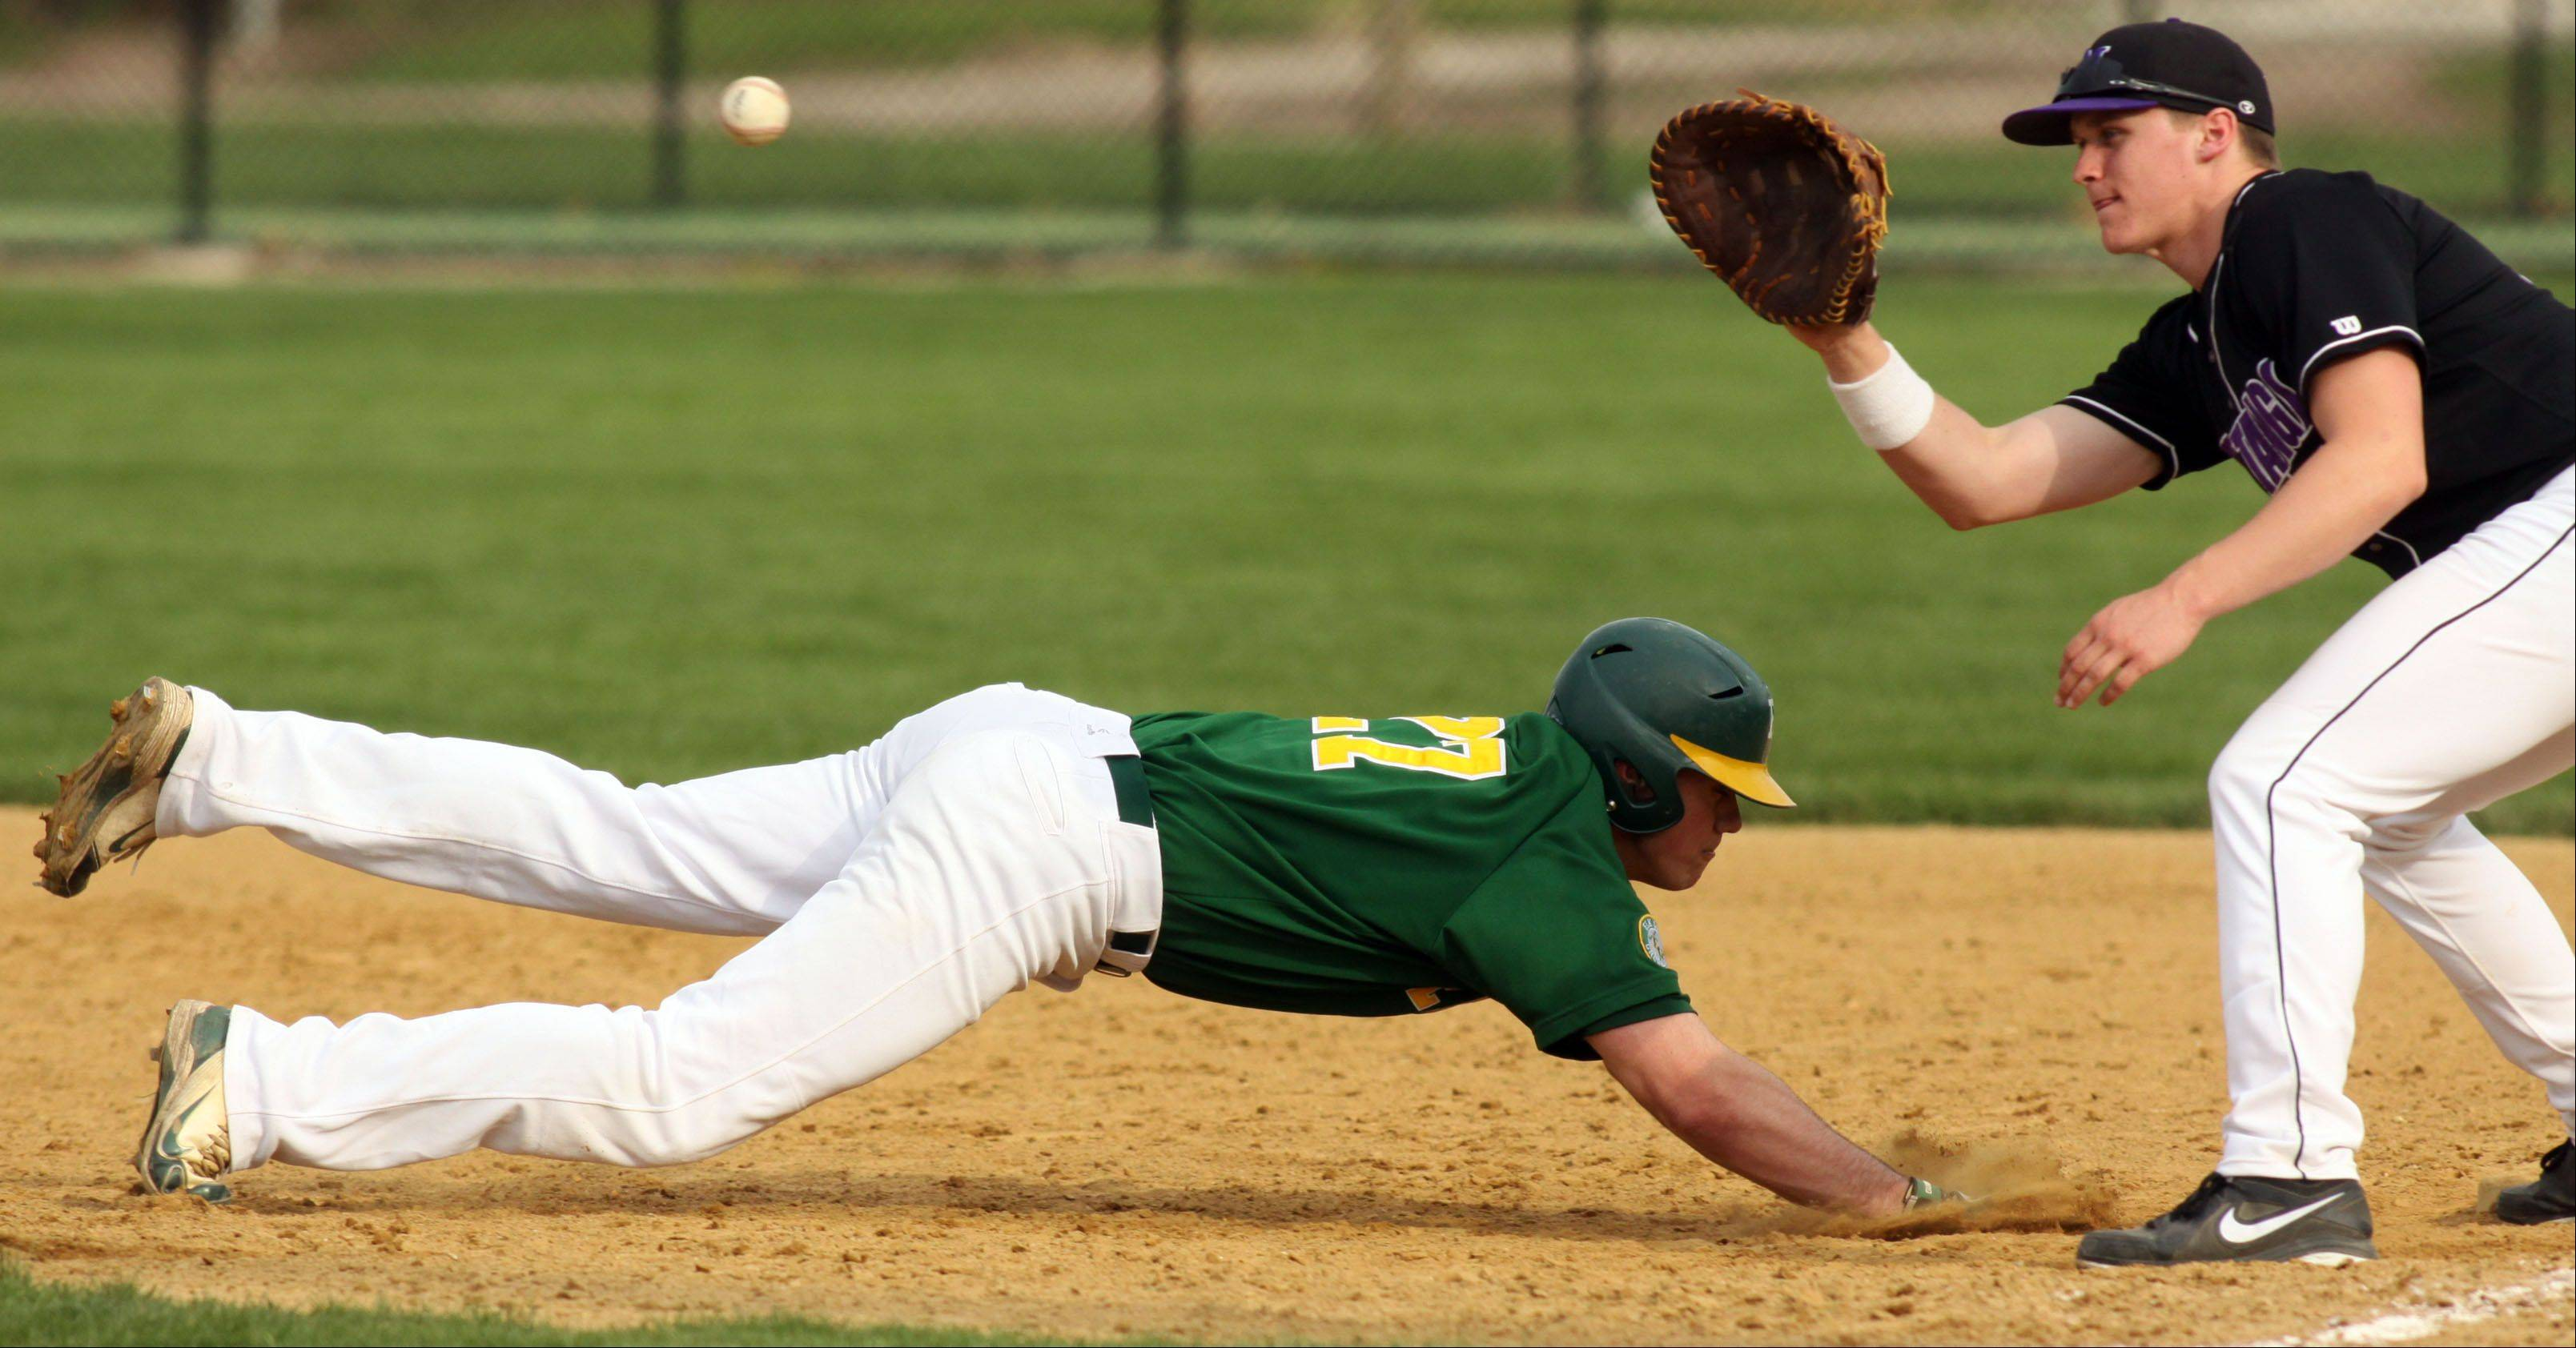 Rolling Meadows first baseman Erik Schurtz, right, fields the pick-off throw as Elk Grove?s Mikey Maize slides safely back to the bag at South Salk Park in Rolling Meadows on Monday evening.